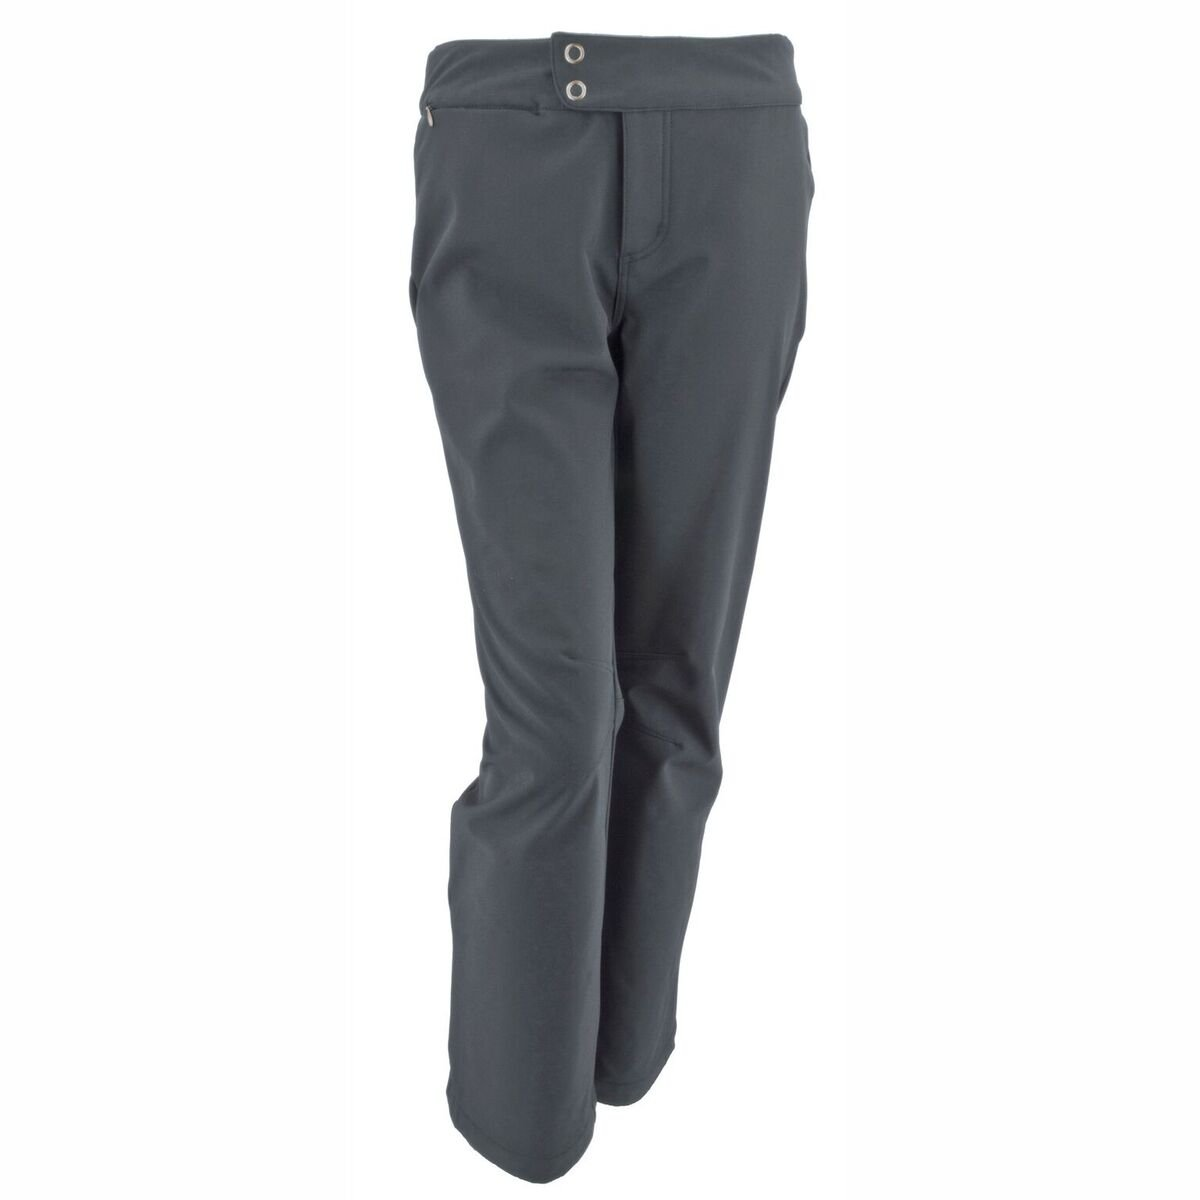 White Sierra Women's 31 Inseam Full Moon Softshell Pants T9202W31